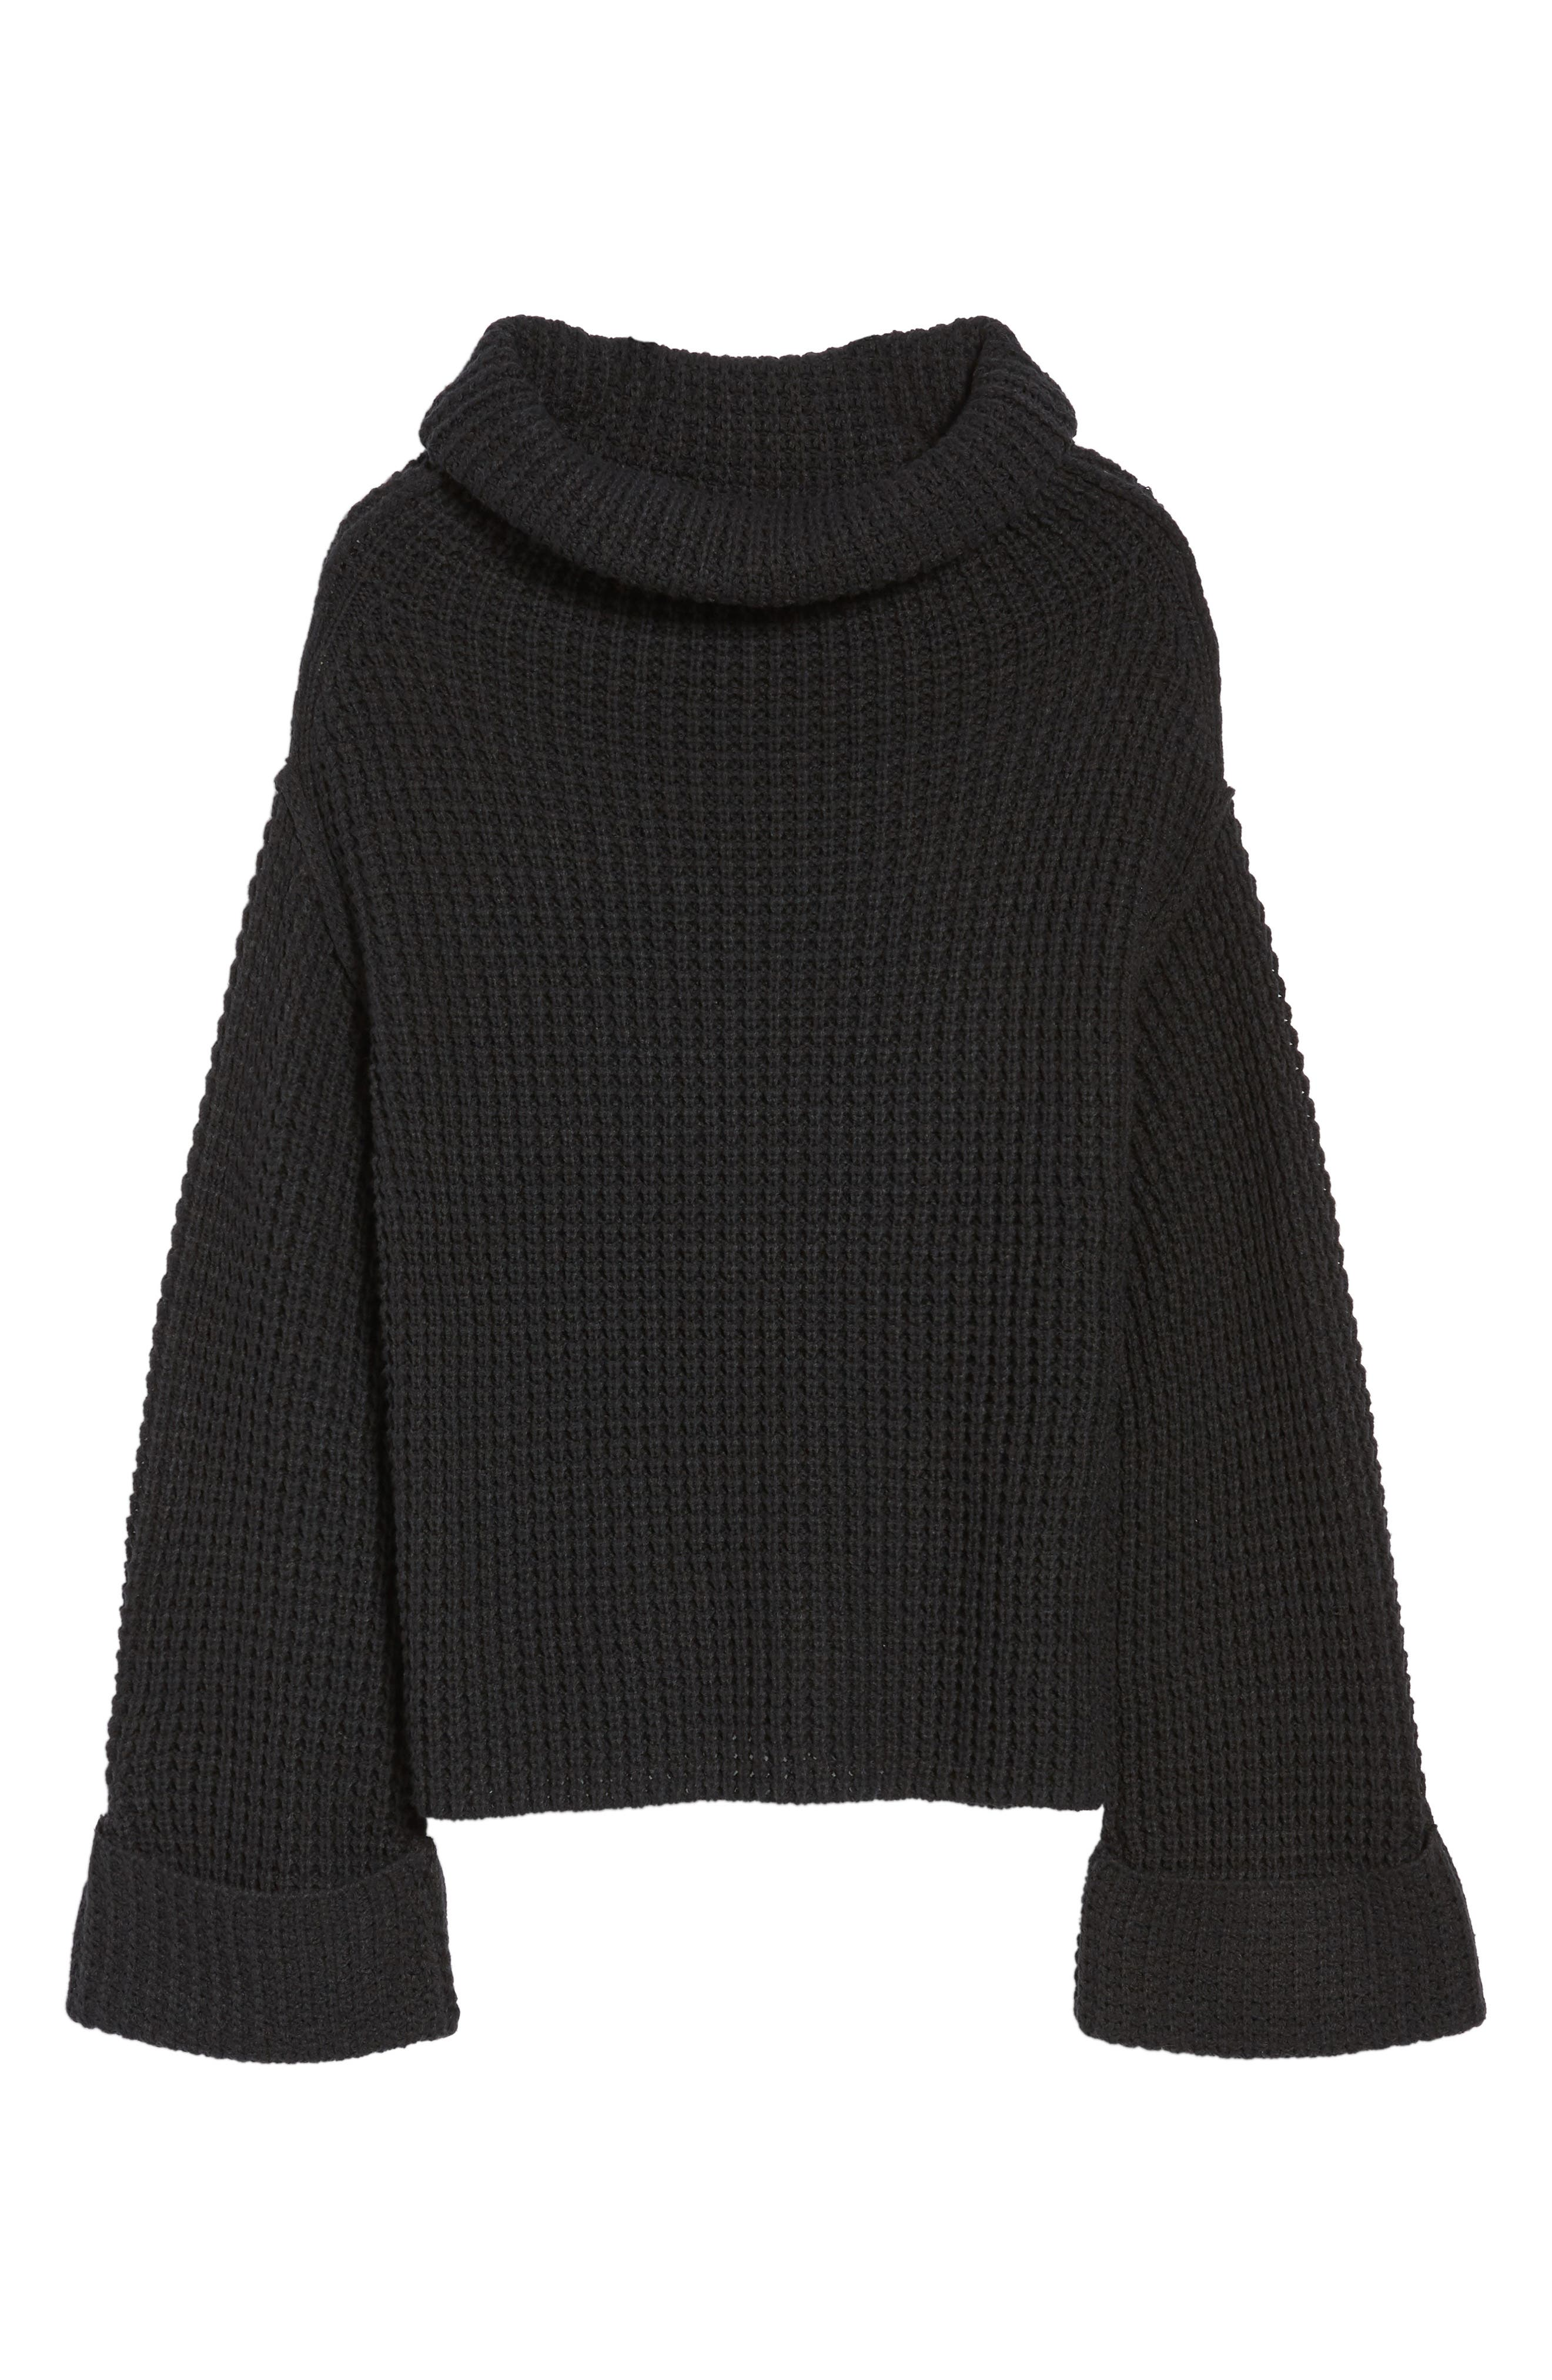 Cowl Neck Thermal Stitch Sweater,                             Alternate thumbnail 6, color,                             001